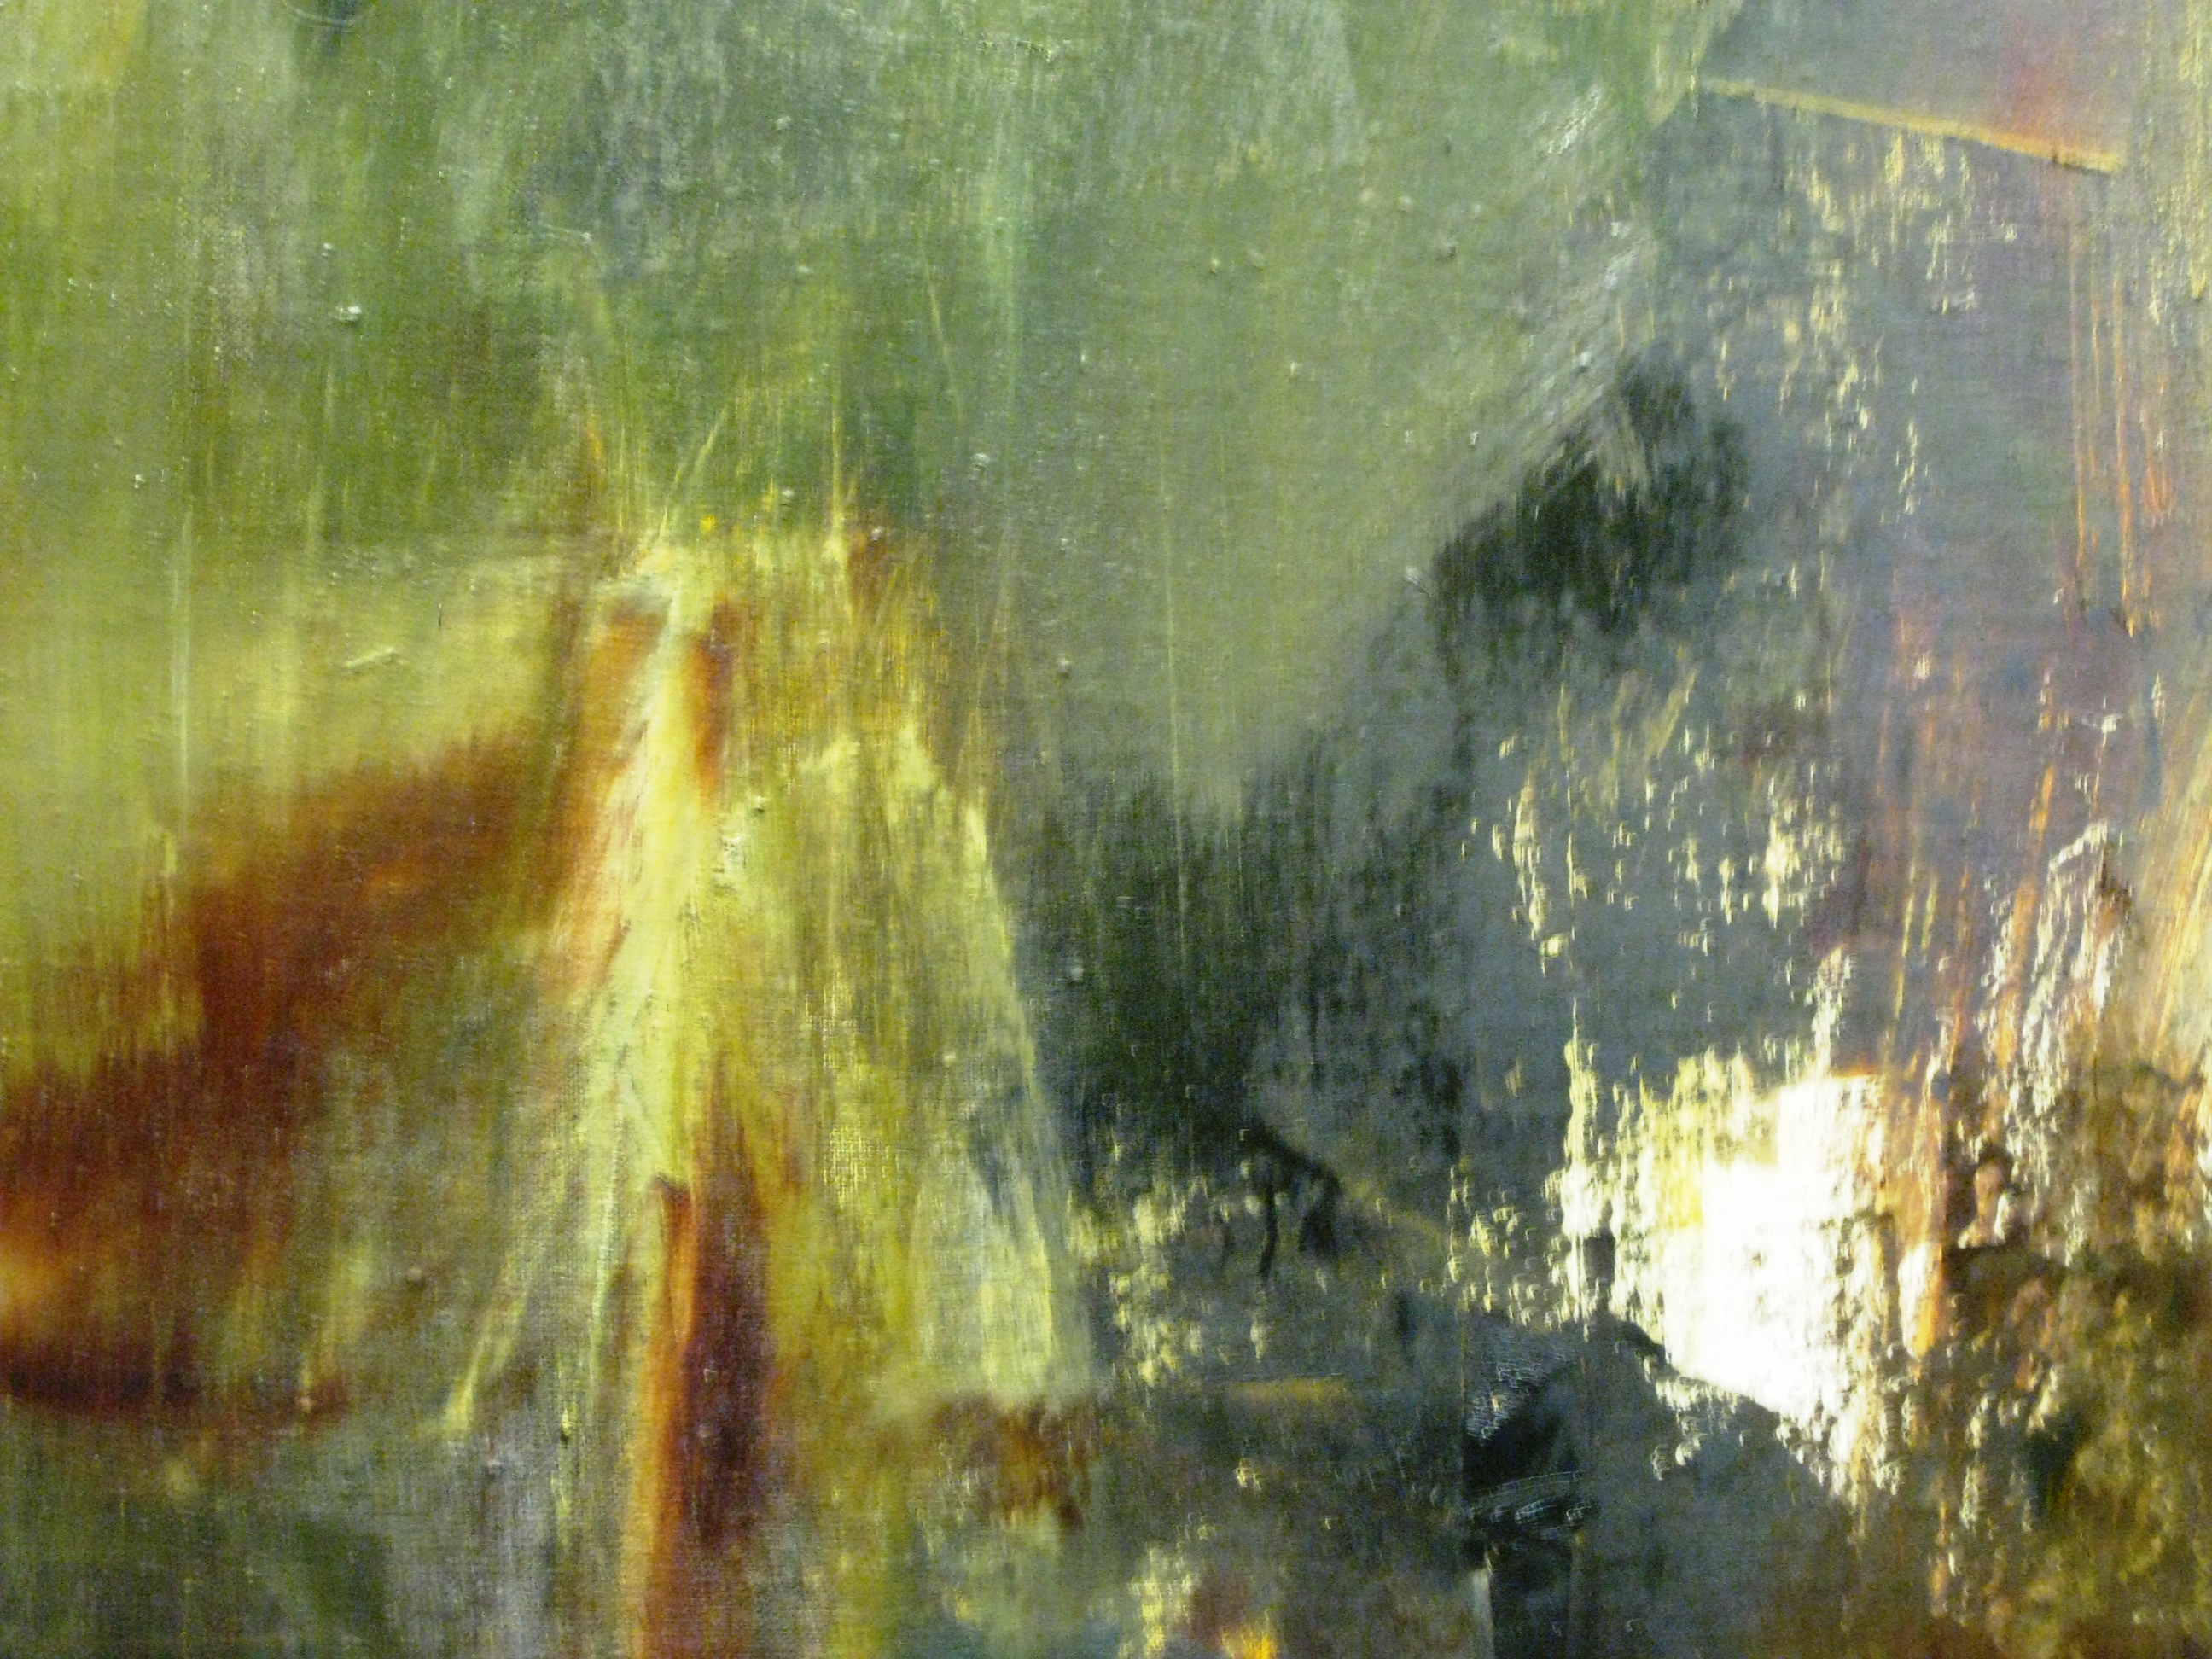 Transitions by Jake Wood-Evans. Photo by Caroline Banks